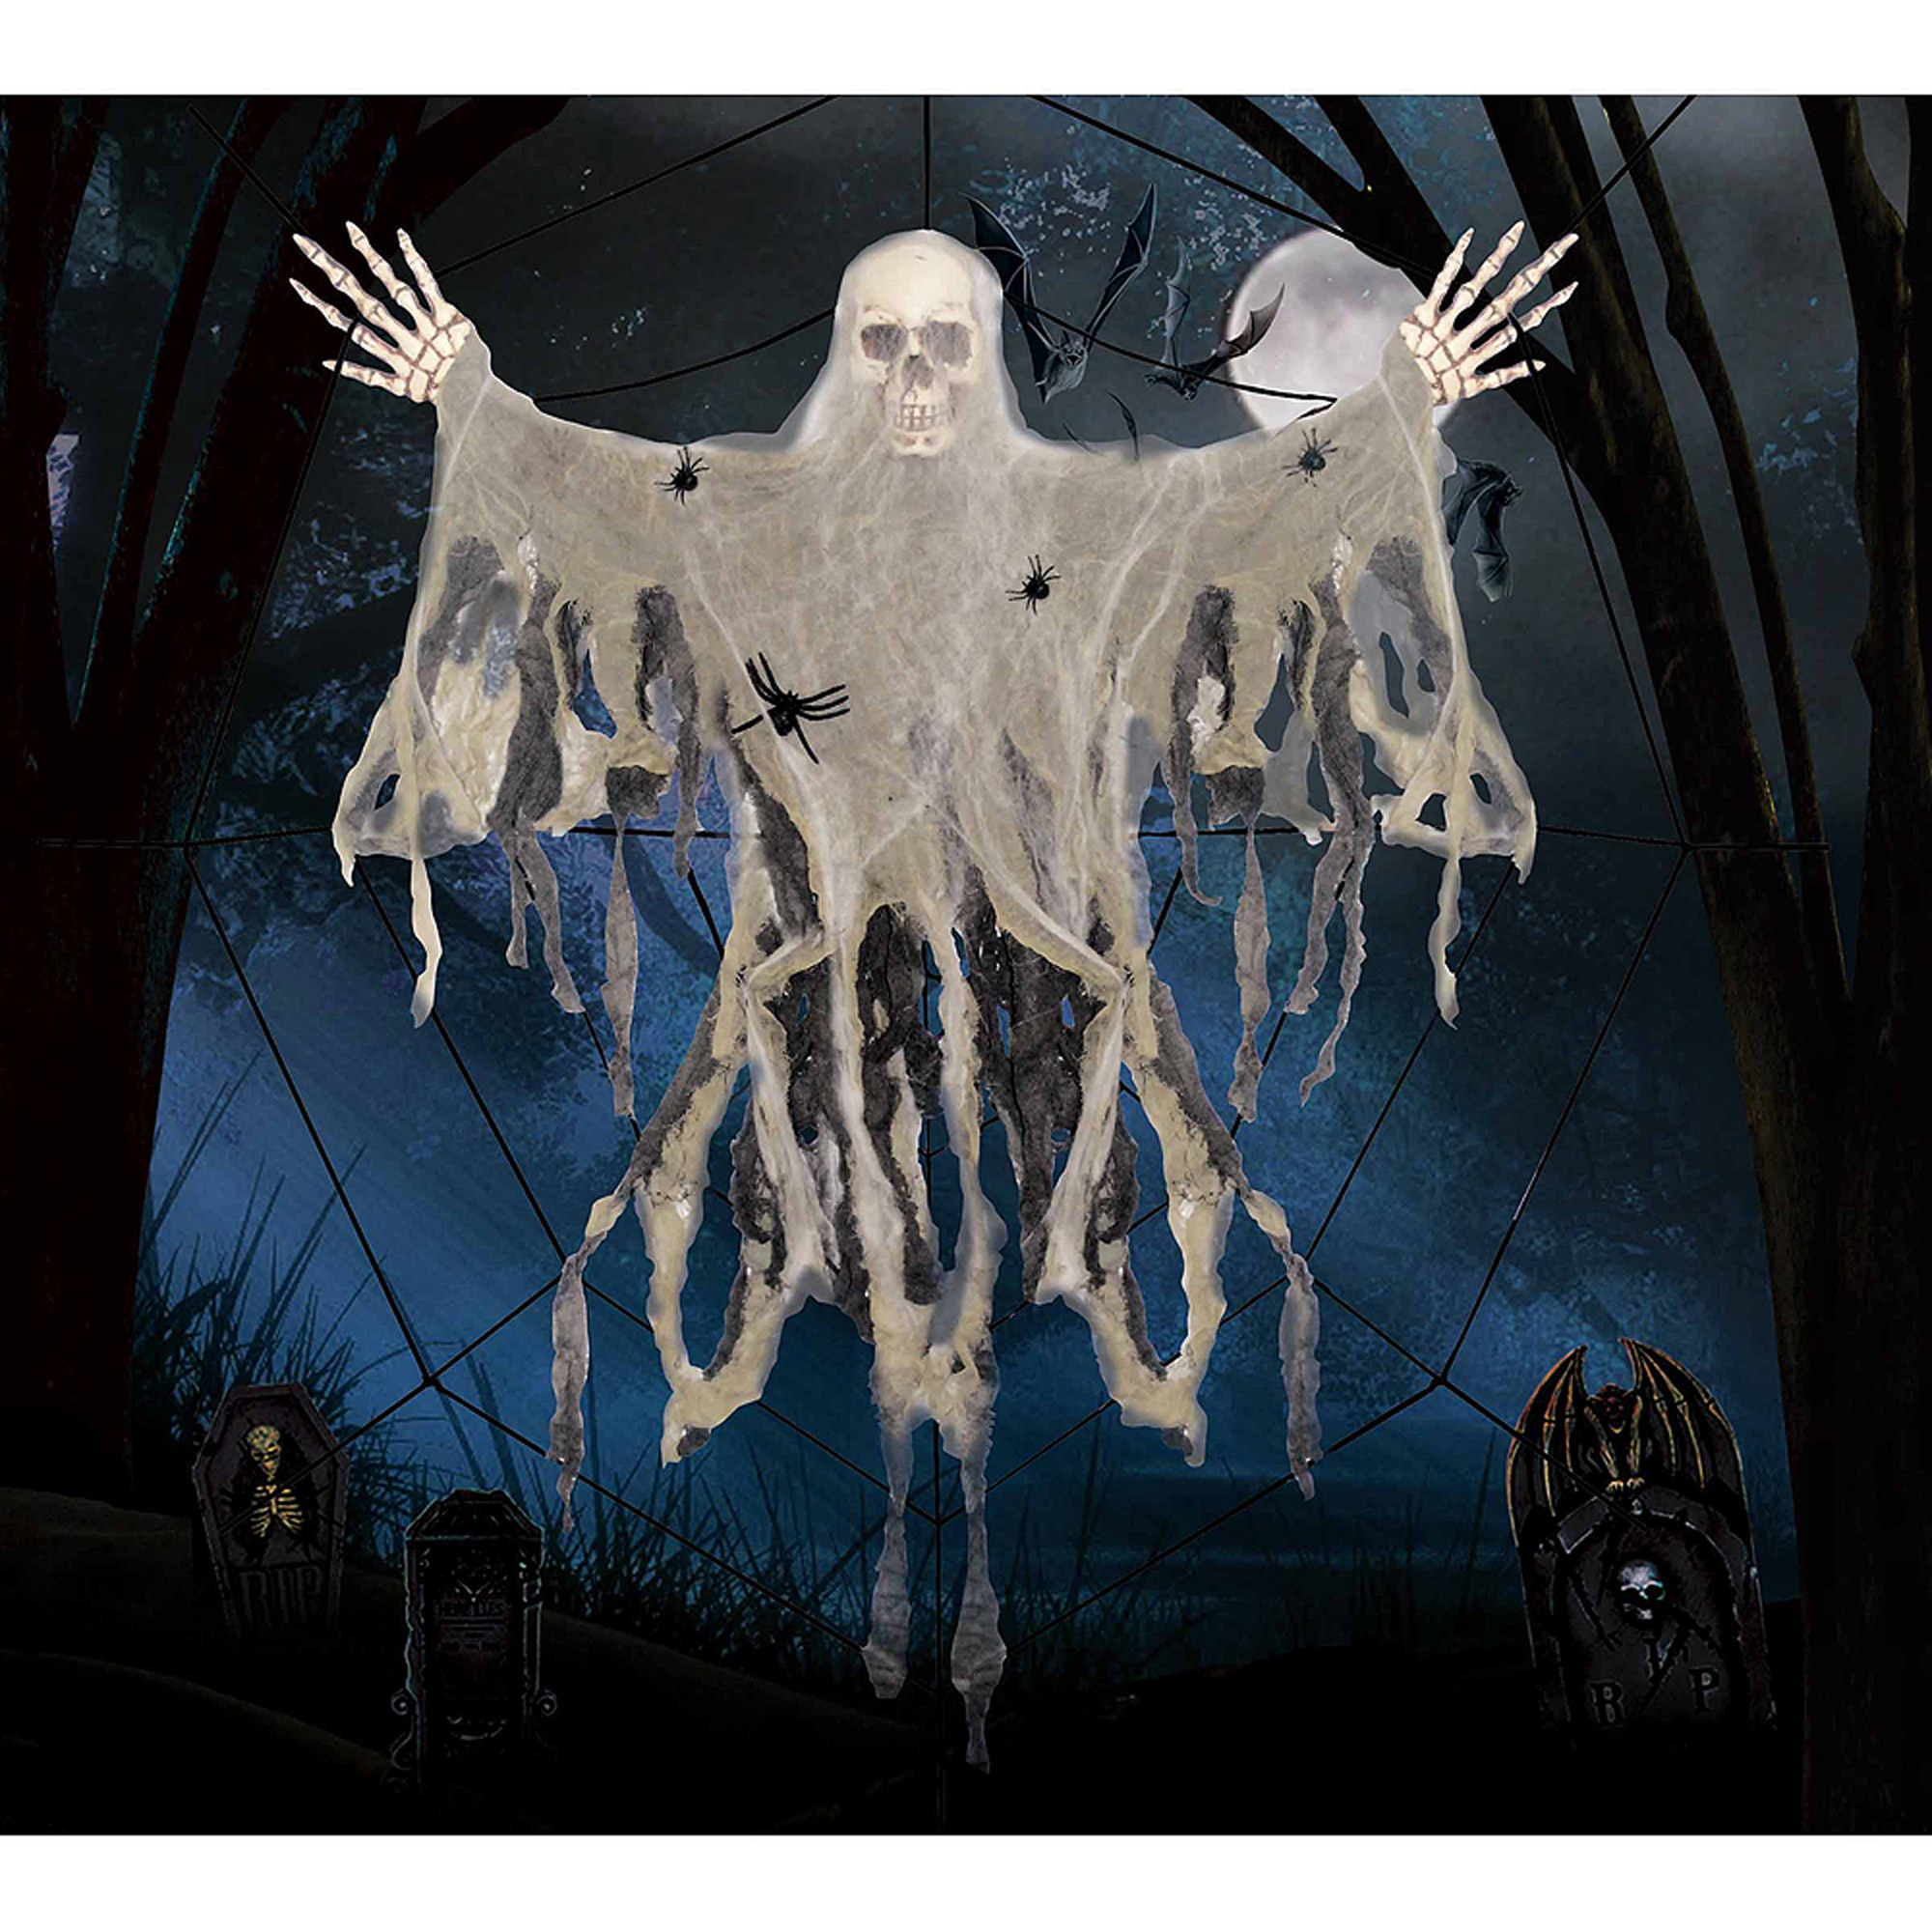 Spider Prey Halloween Decoration